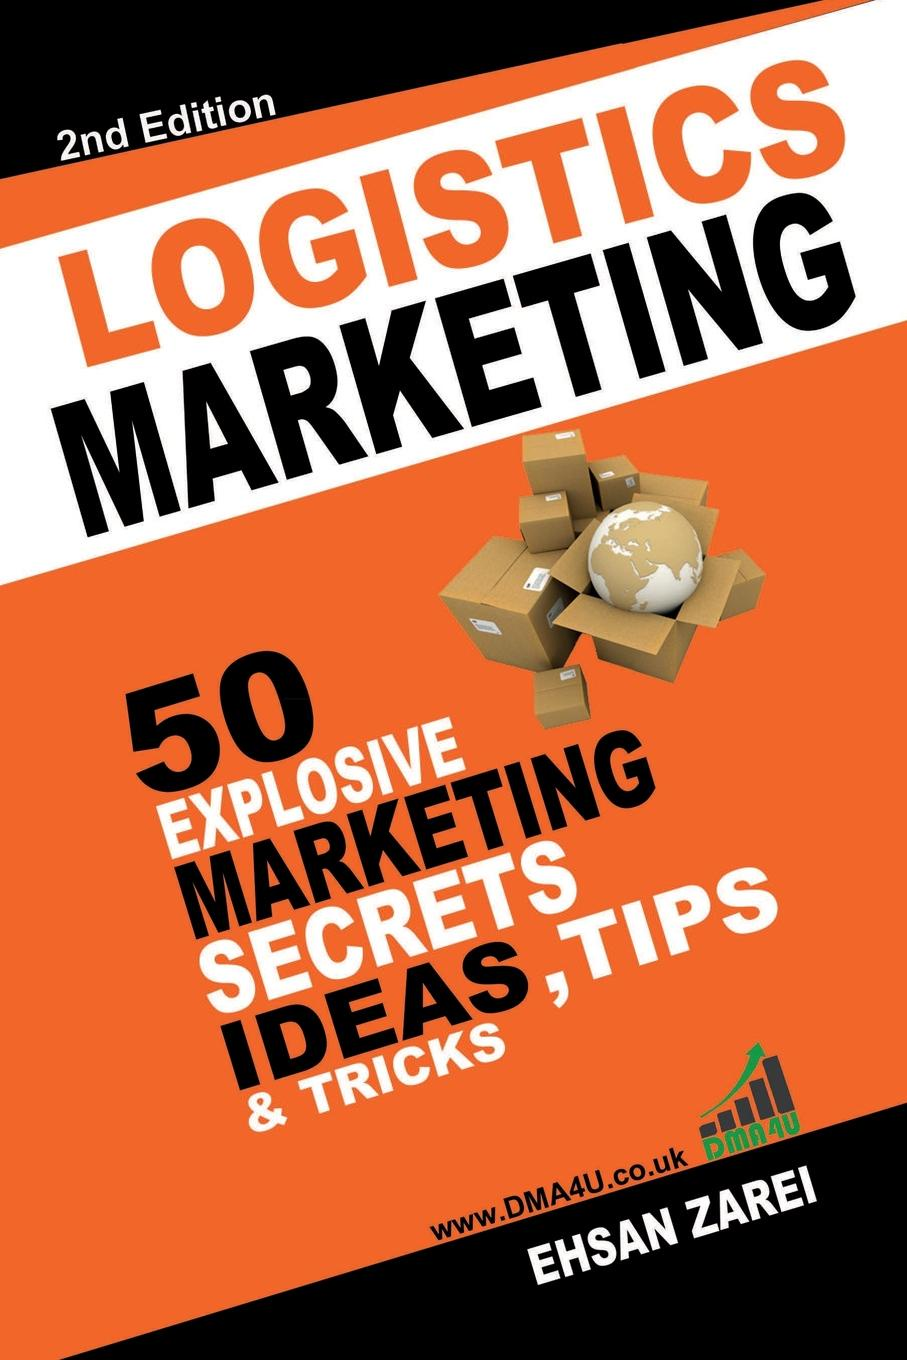 Logistics Marketing Did You Waste A Lot Of Time& Money On Nonsense Marketing Р?...